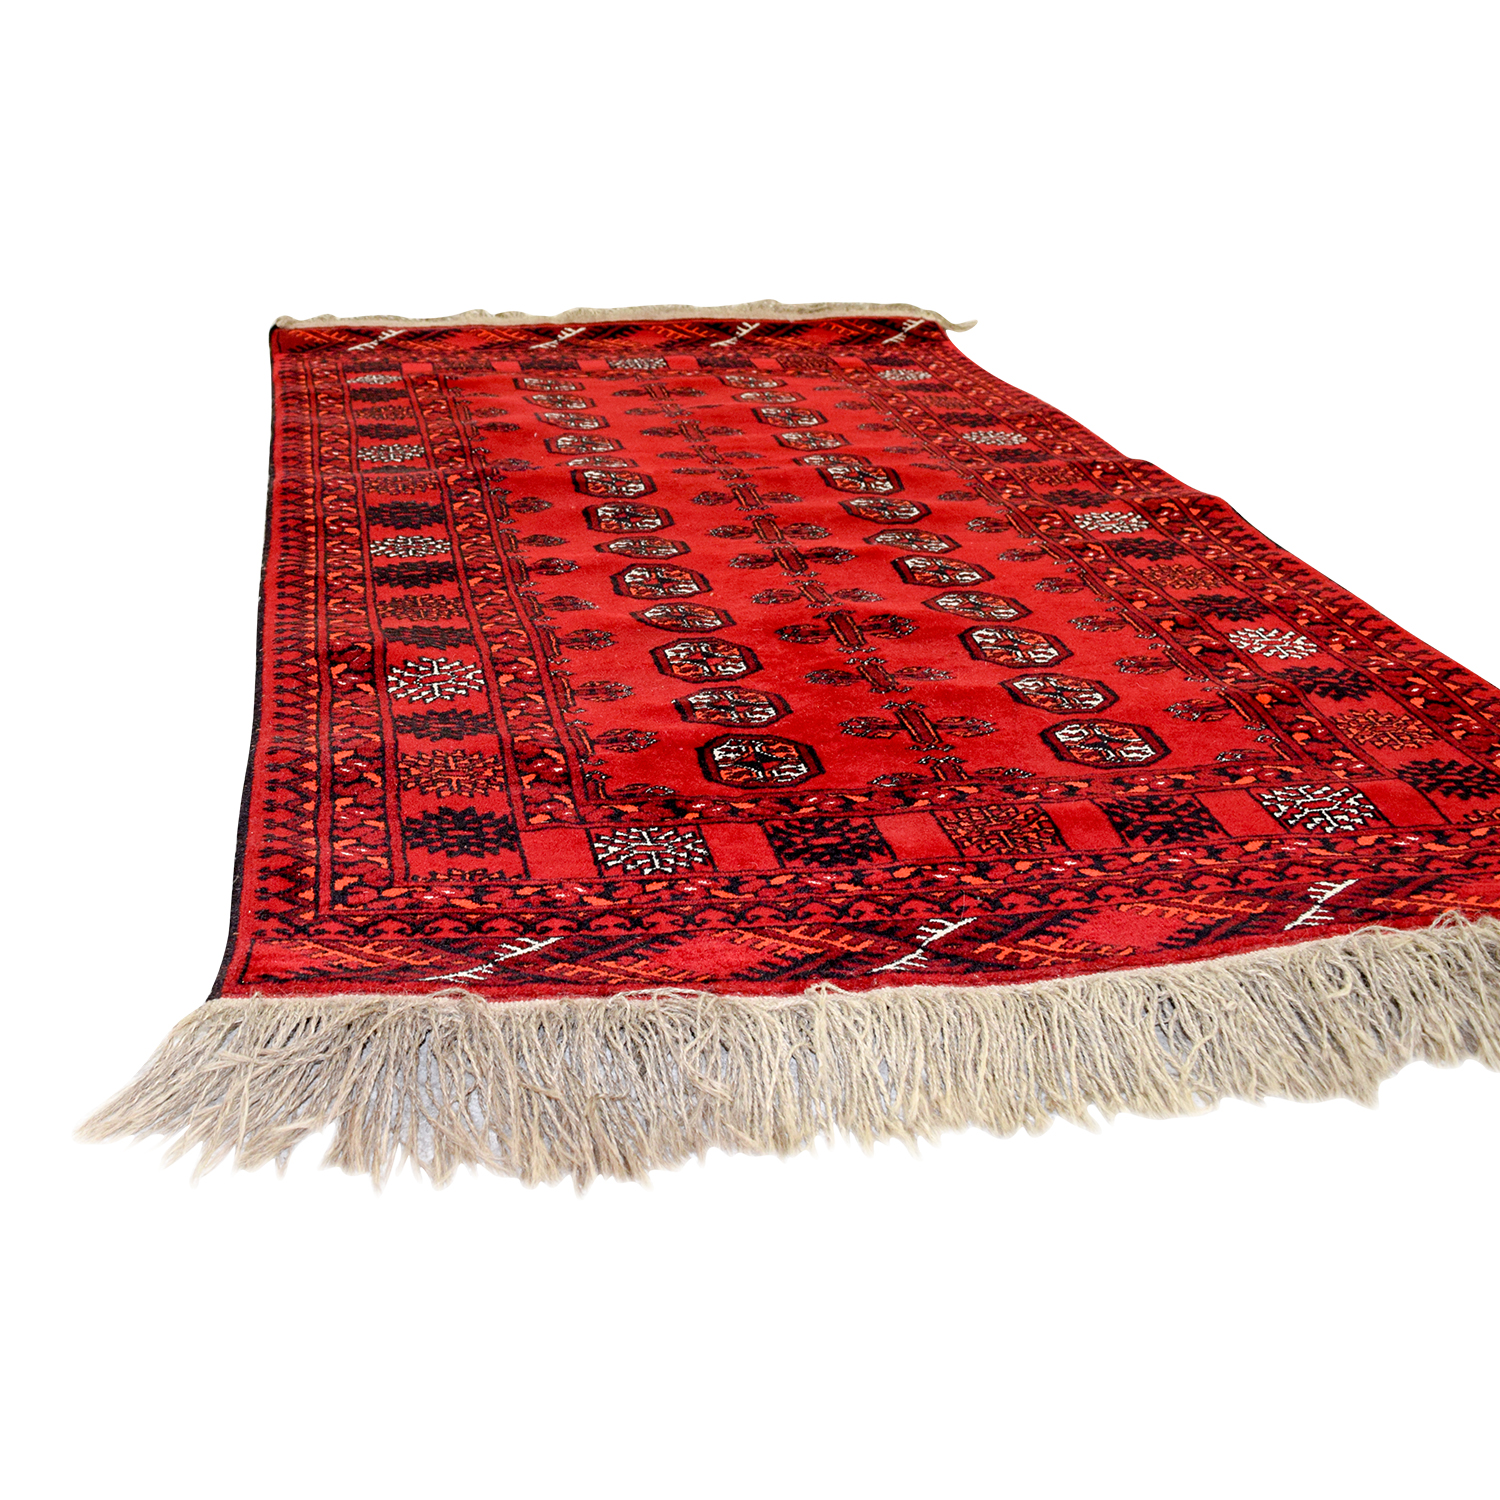 Red Black and White Runner Rug for sale